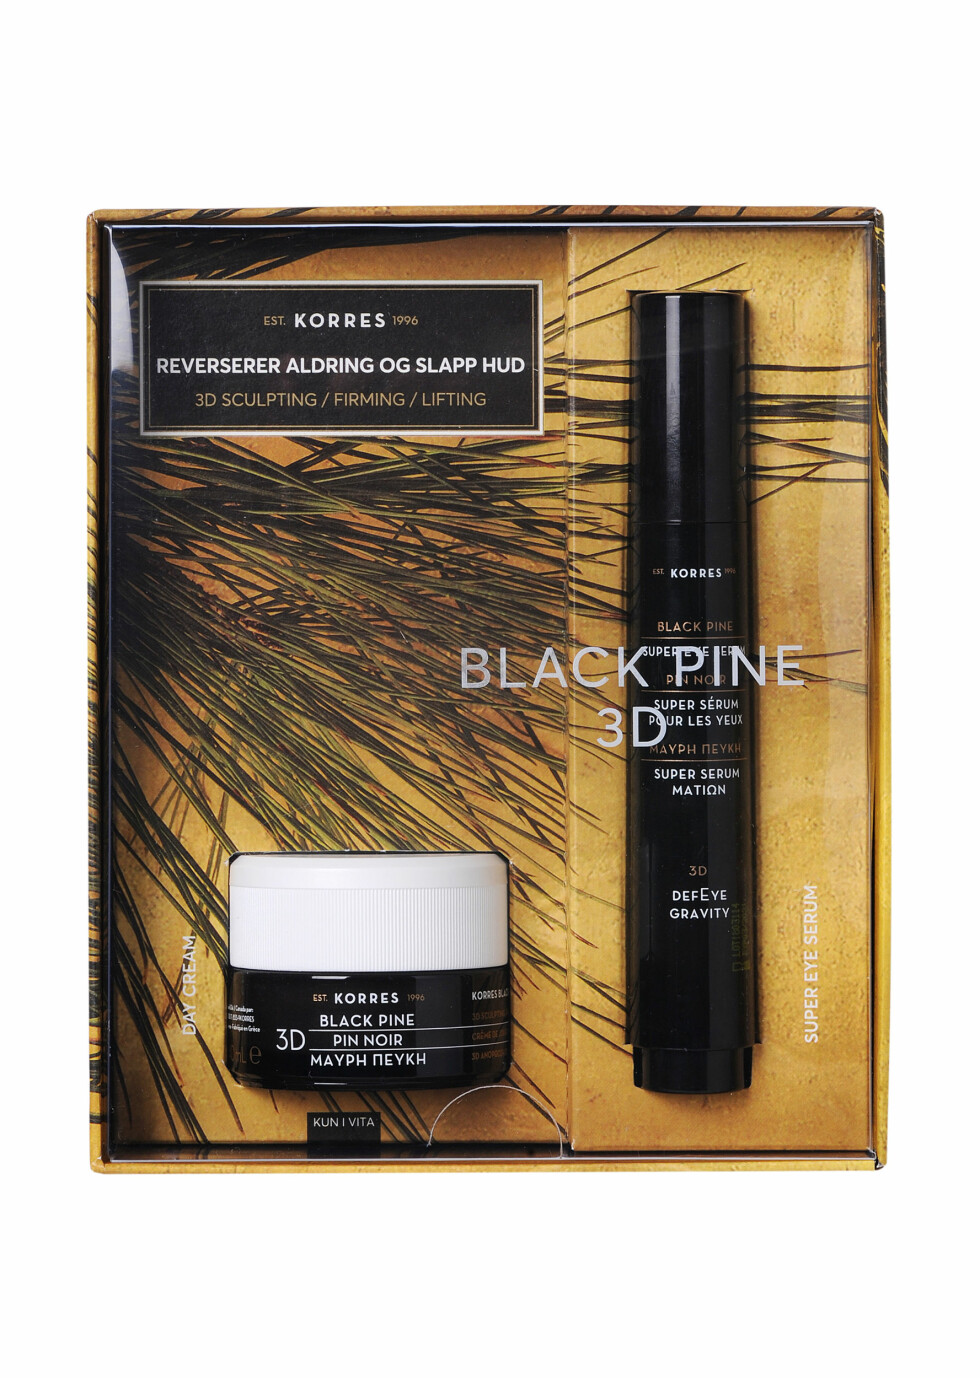 Korres |389,-| https://www.vita.no/merker/korres/black-pine/korres-black-pine-3d-eye-cream-15-ml-15ml